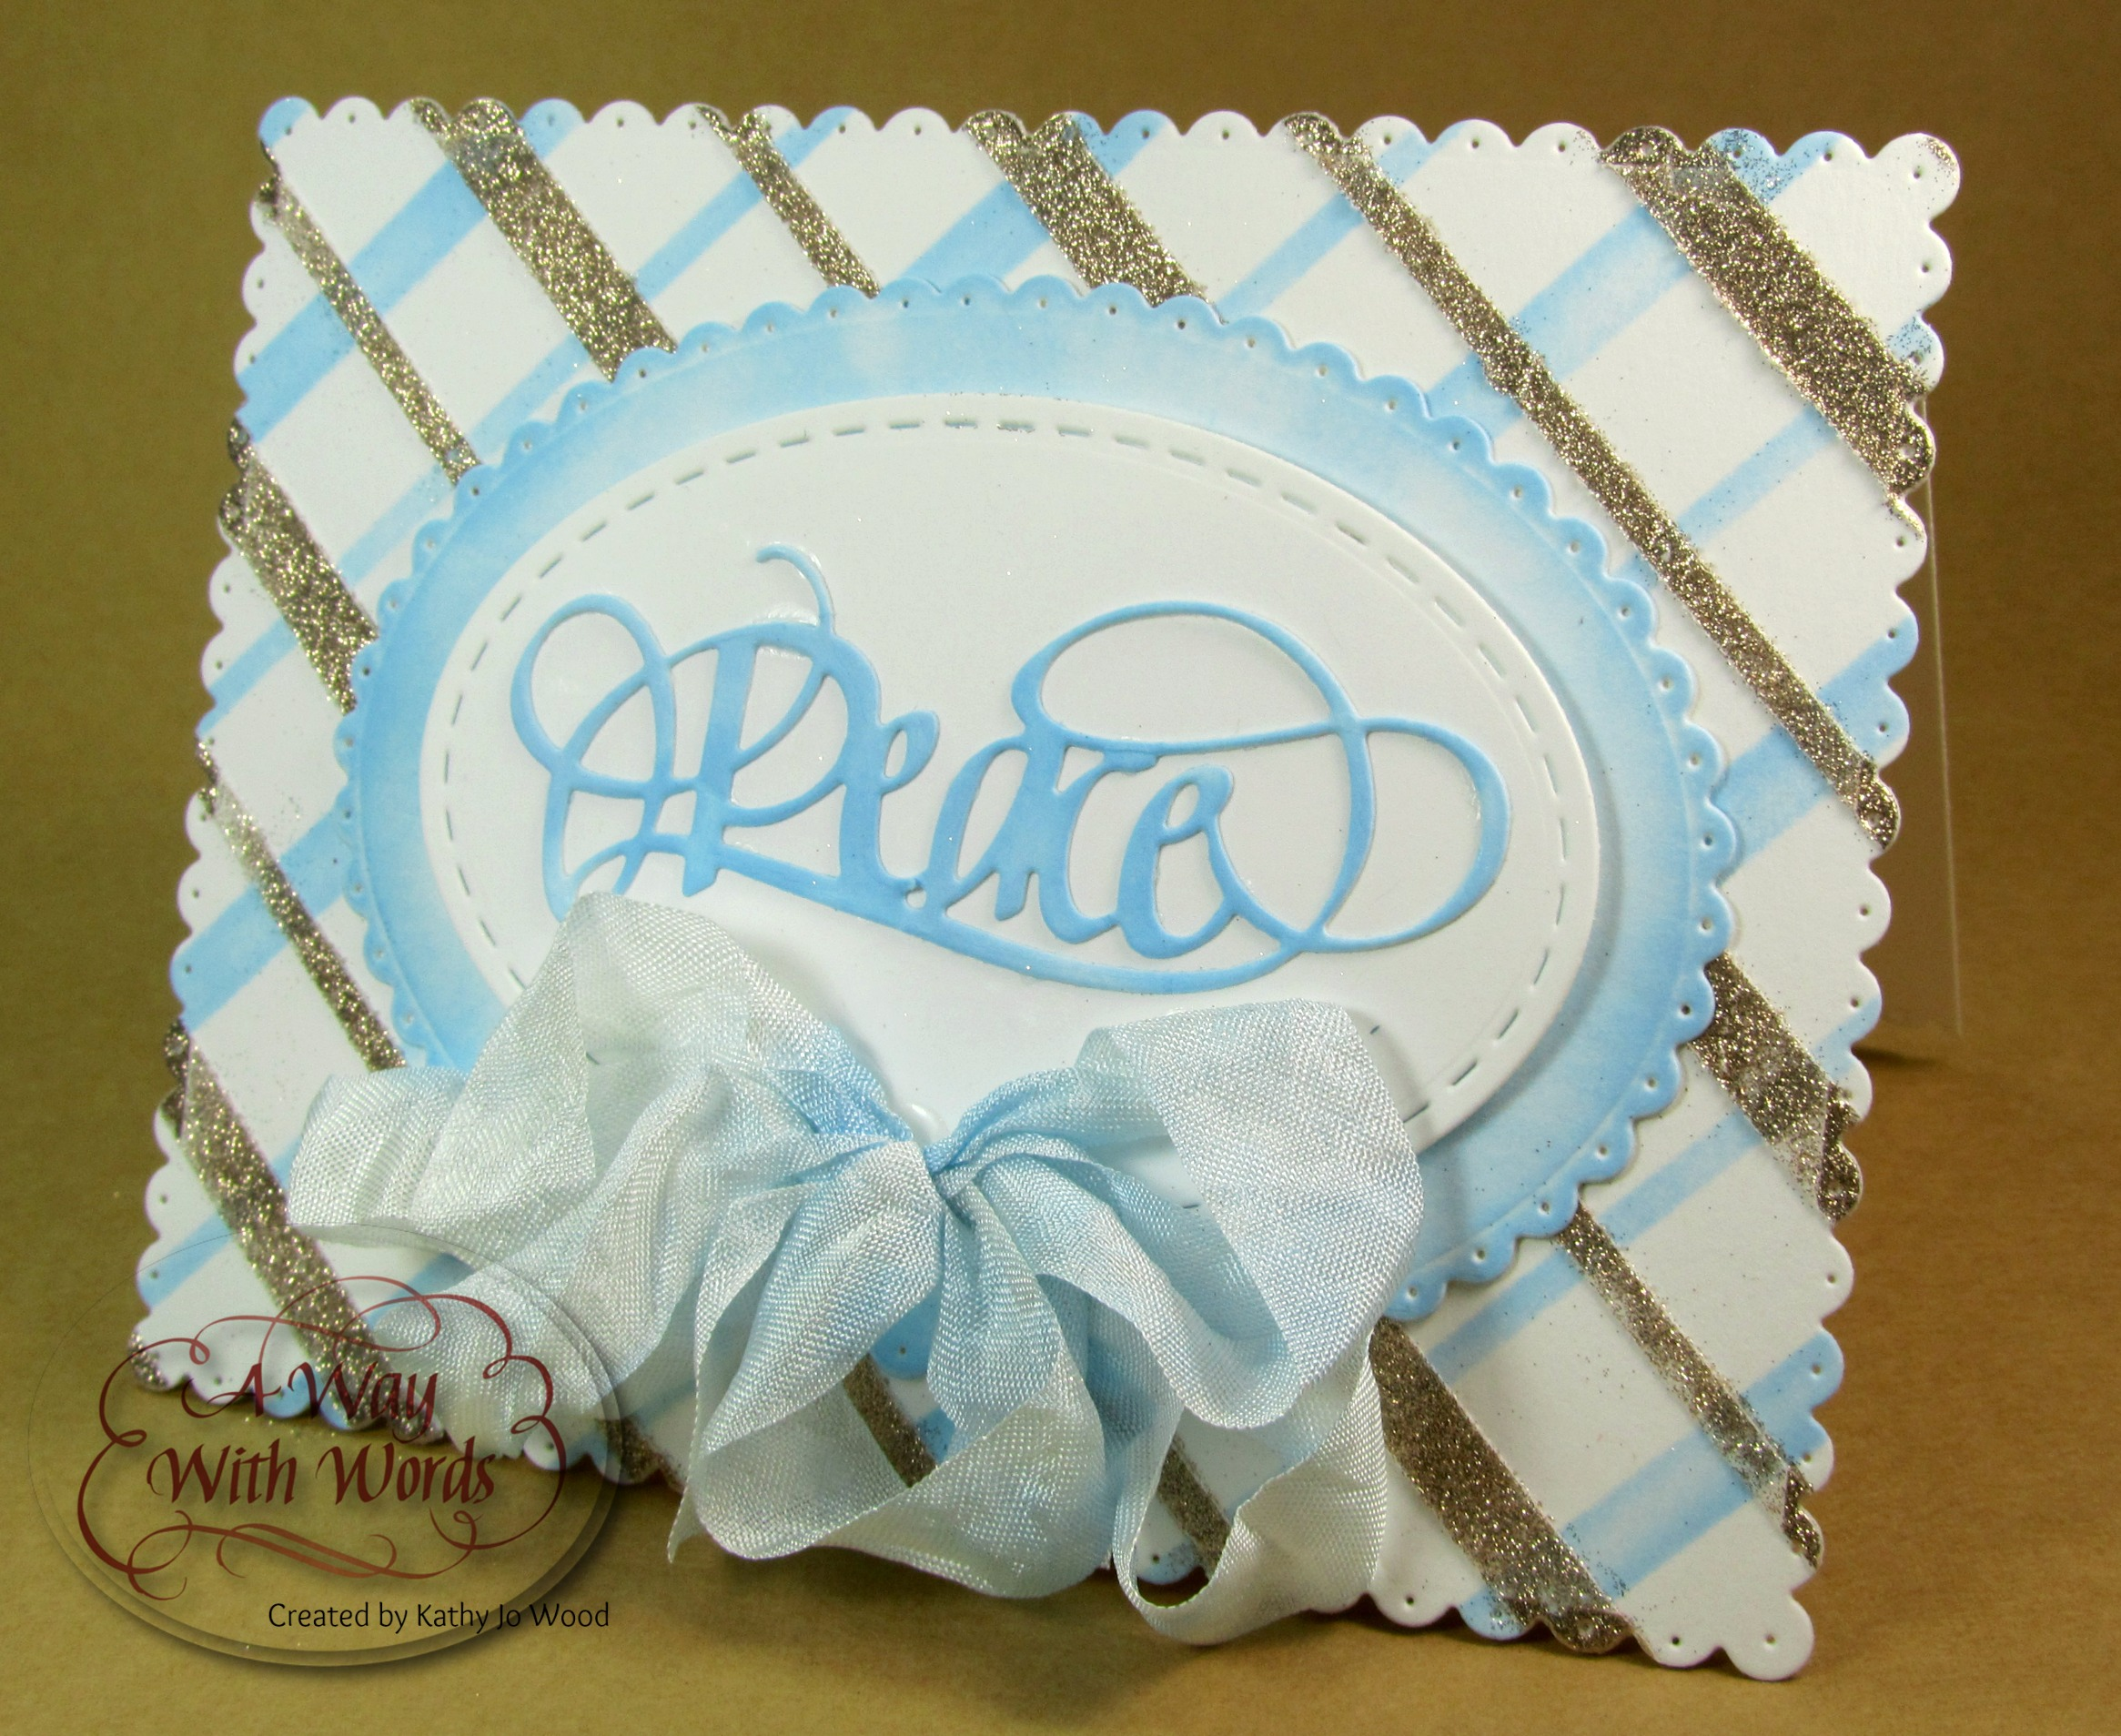 Hello Crafty Friends Kathy Jo Here Sharing A Holiday Card Using The Beautiful Peace Die Designed By Suzanne Cannon Consists Of Light Blue